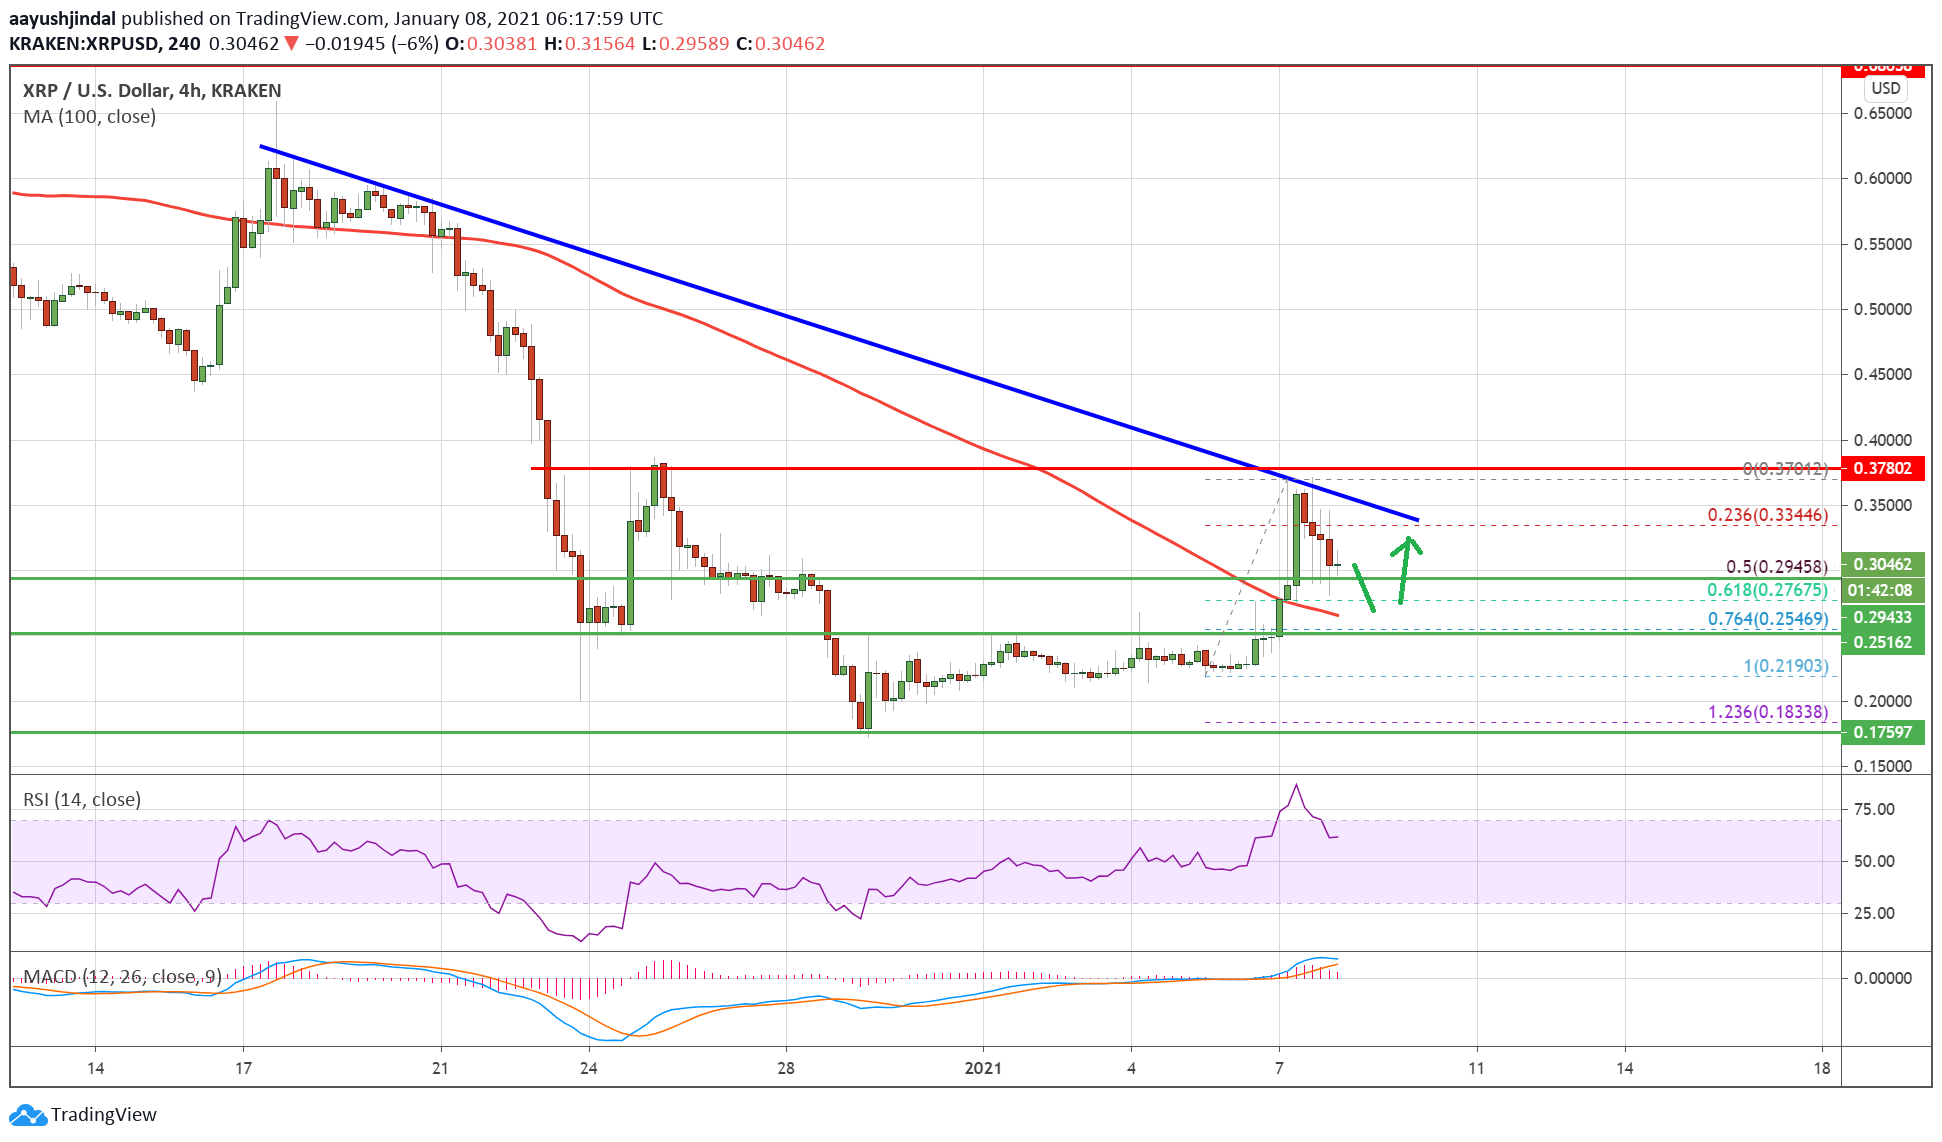 Charted: Ripple (XRP) Eyes Fresh Rally To $0.35, Dips Remain Supported